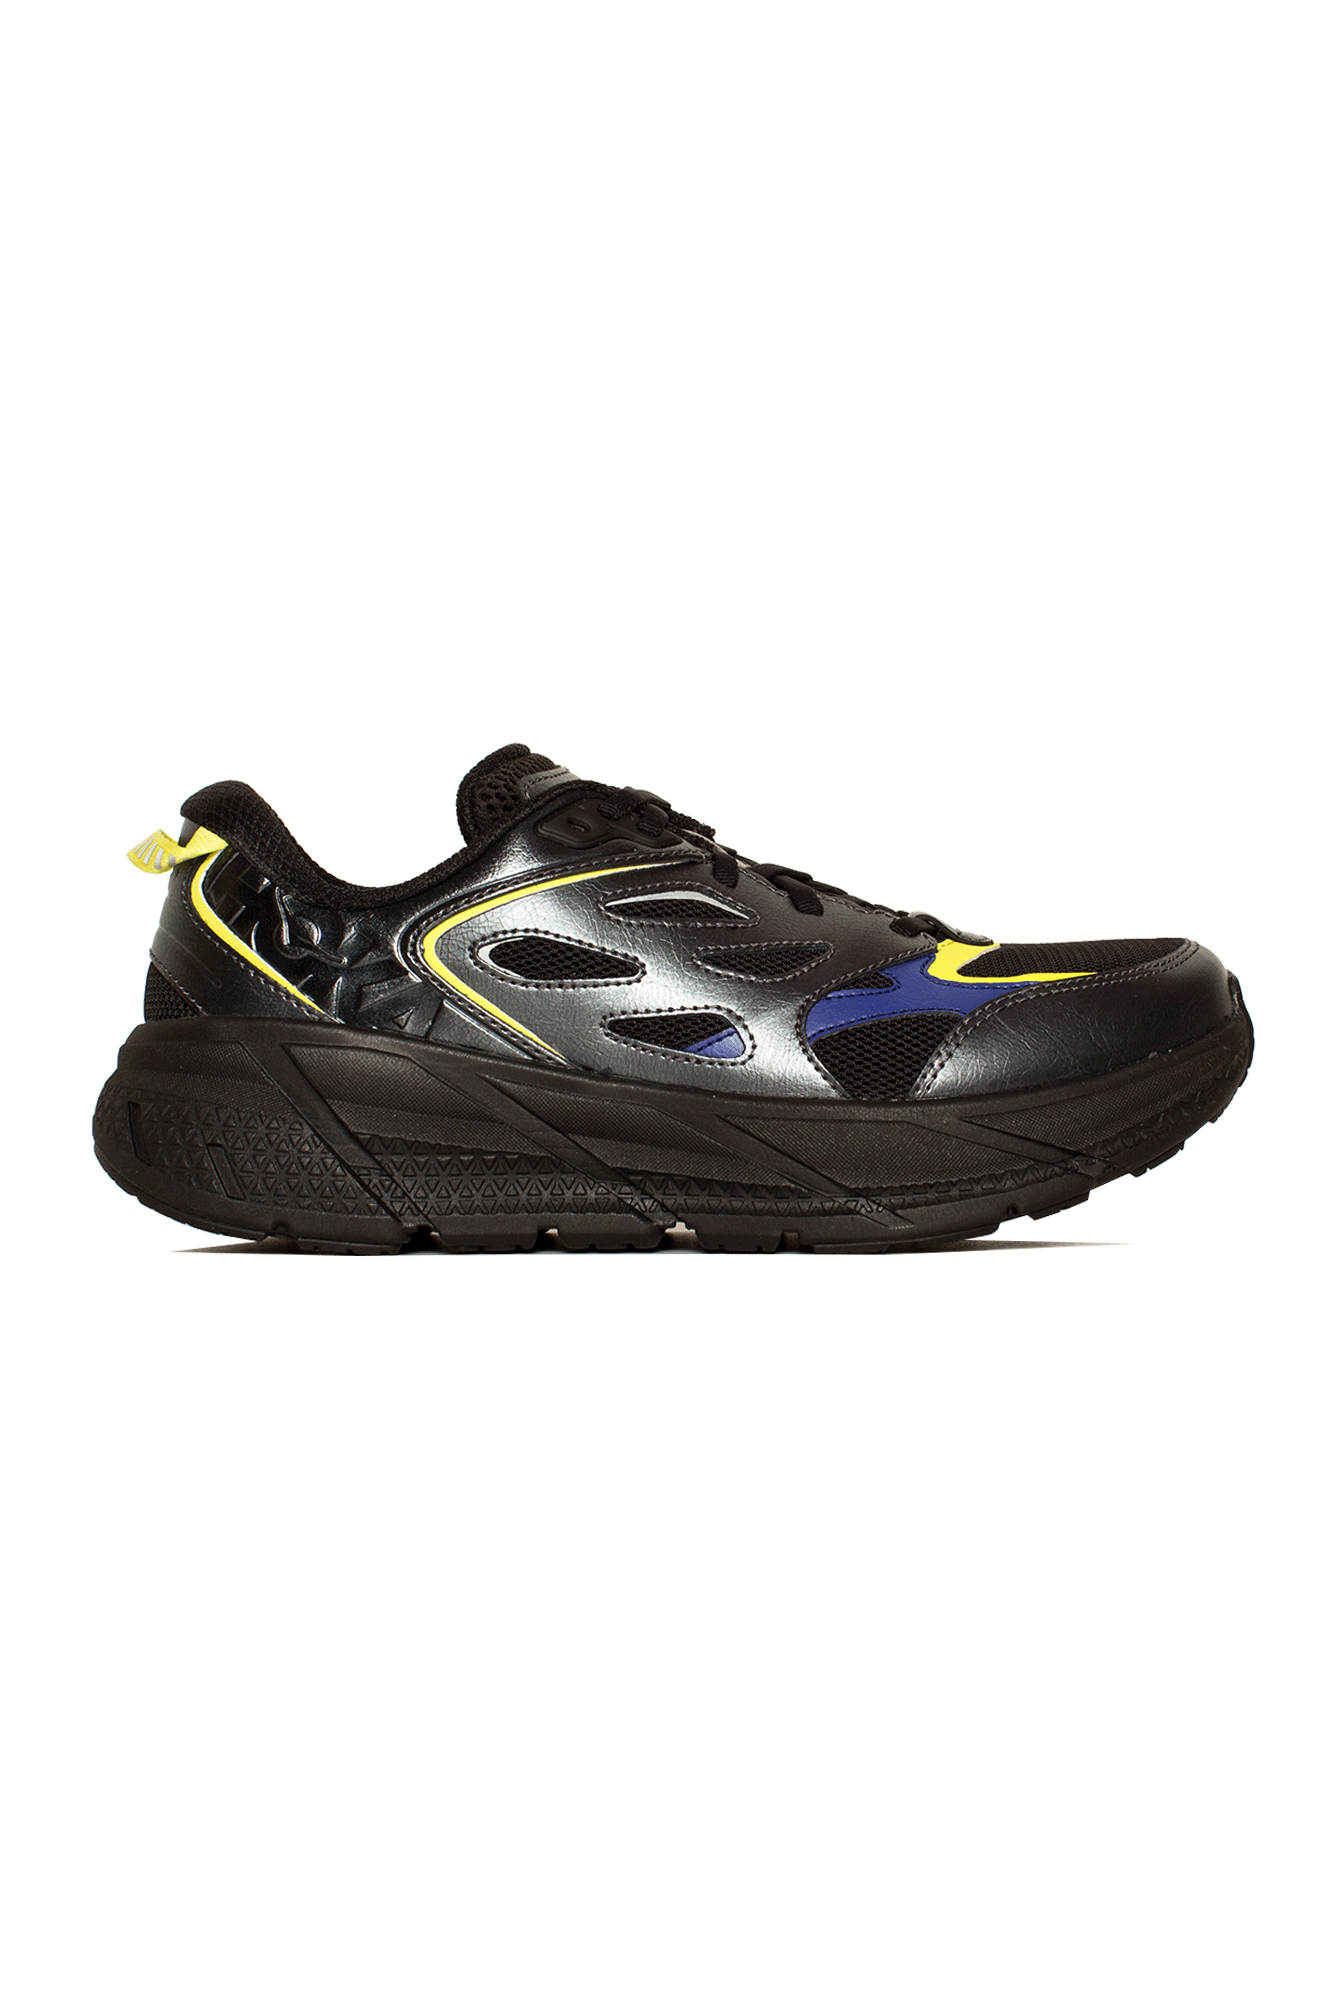 Hoka One One Sneakers Clifton x Opening Ceremony BM Black HK.1111594#000#BBLC#6 - One Block Down